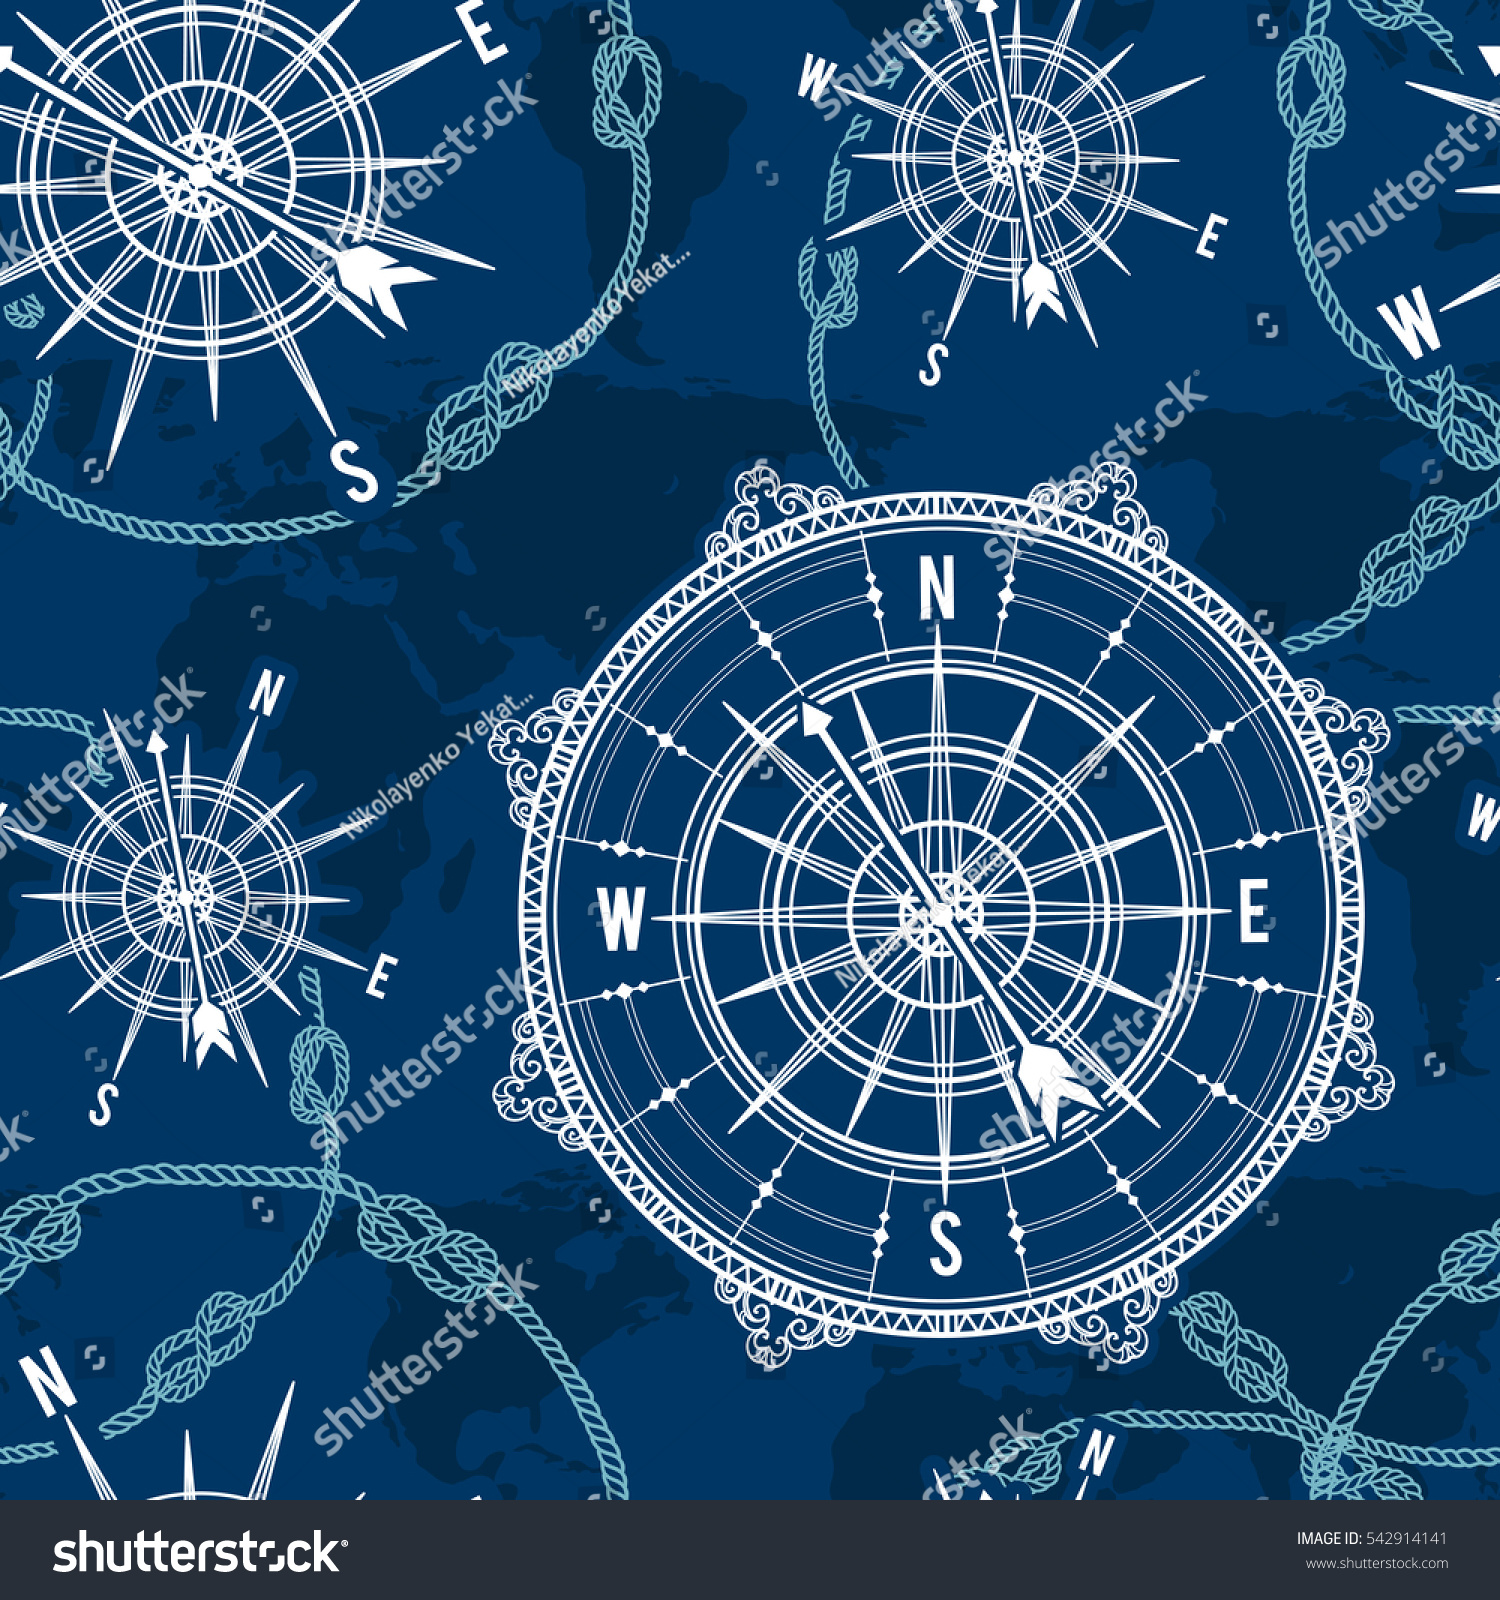 Seamless pattern vintage compass world map vectores en stock seamless pattern with vintage compass world map wind rose and rope knot nautical gumiabroncs Images